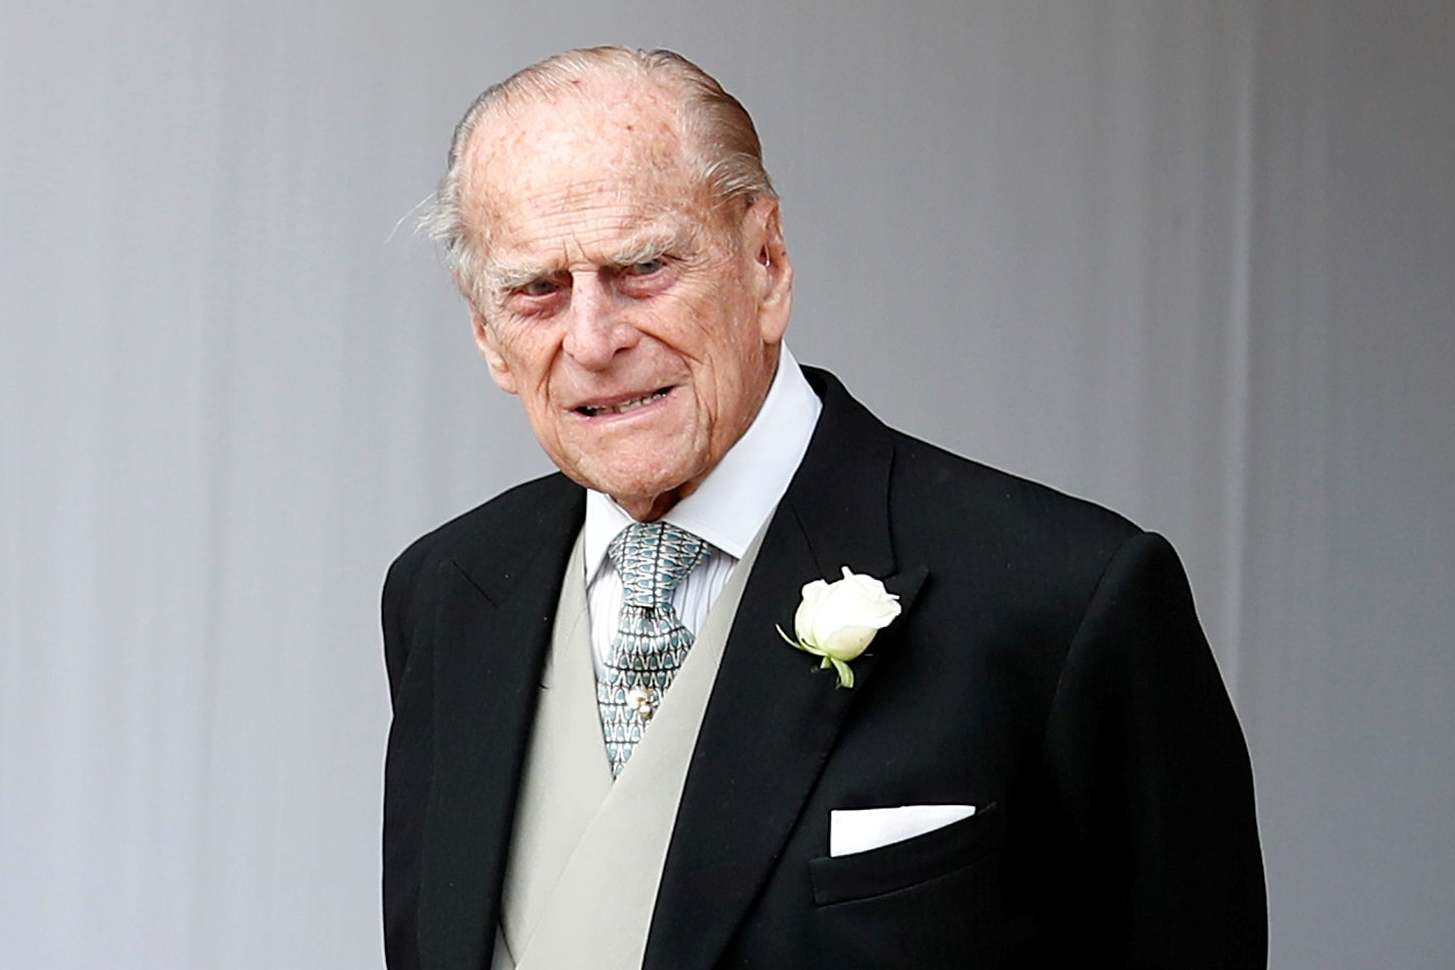 Prince Philip Funeral- When and where will it happen?